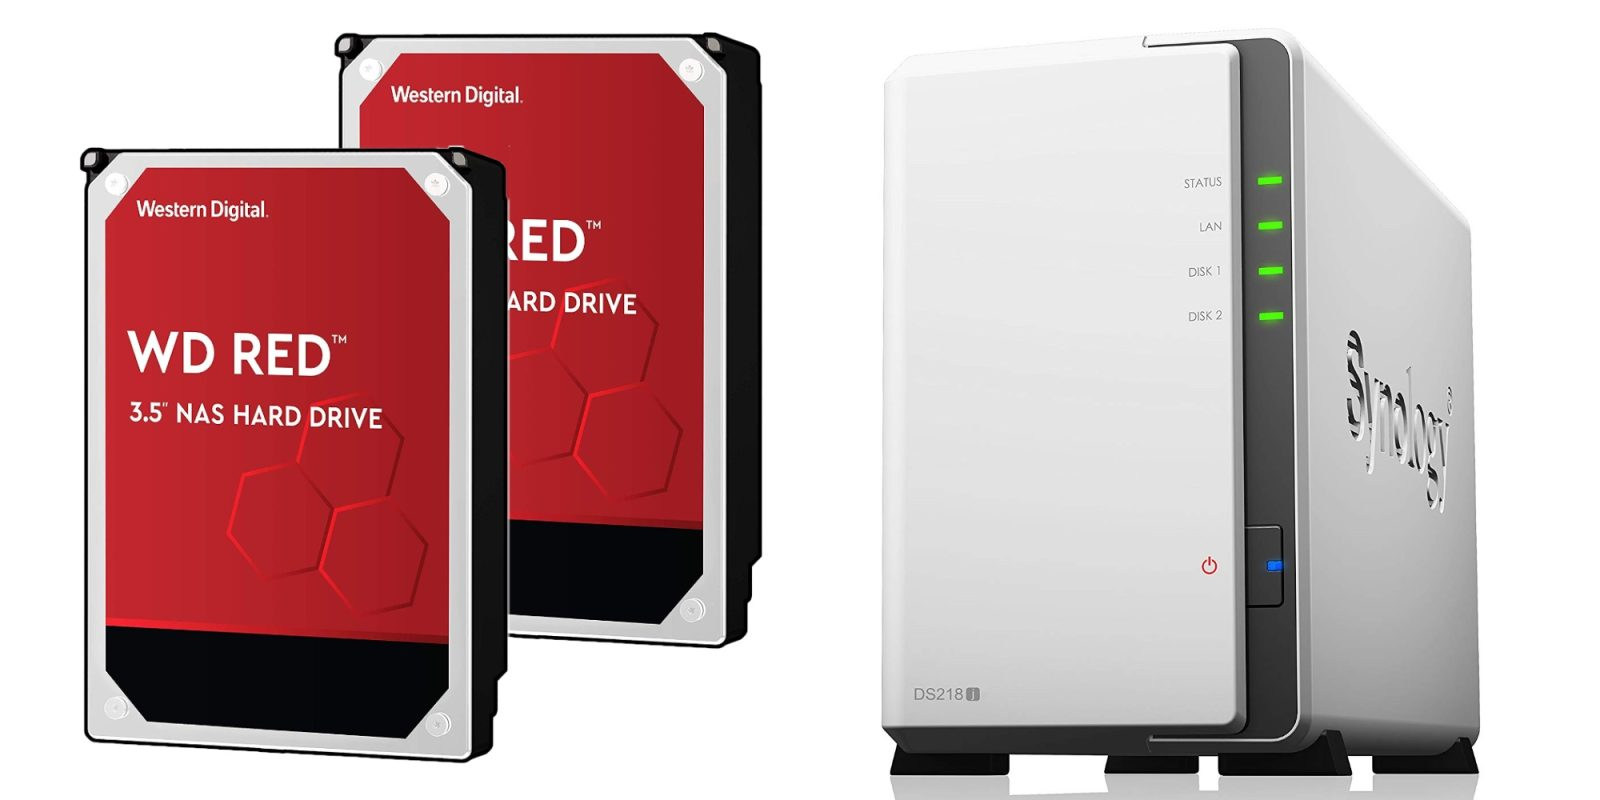 Bundle Synology's 2-Bay NAS with 8TB of WD storage for $316 ($370 value)